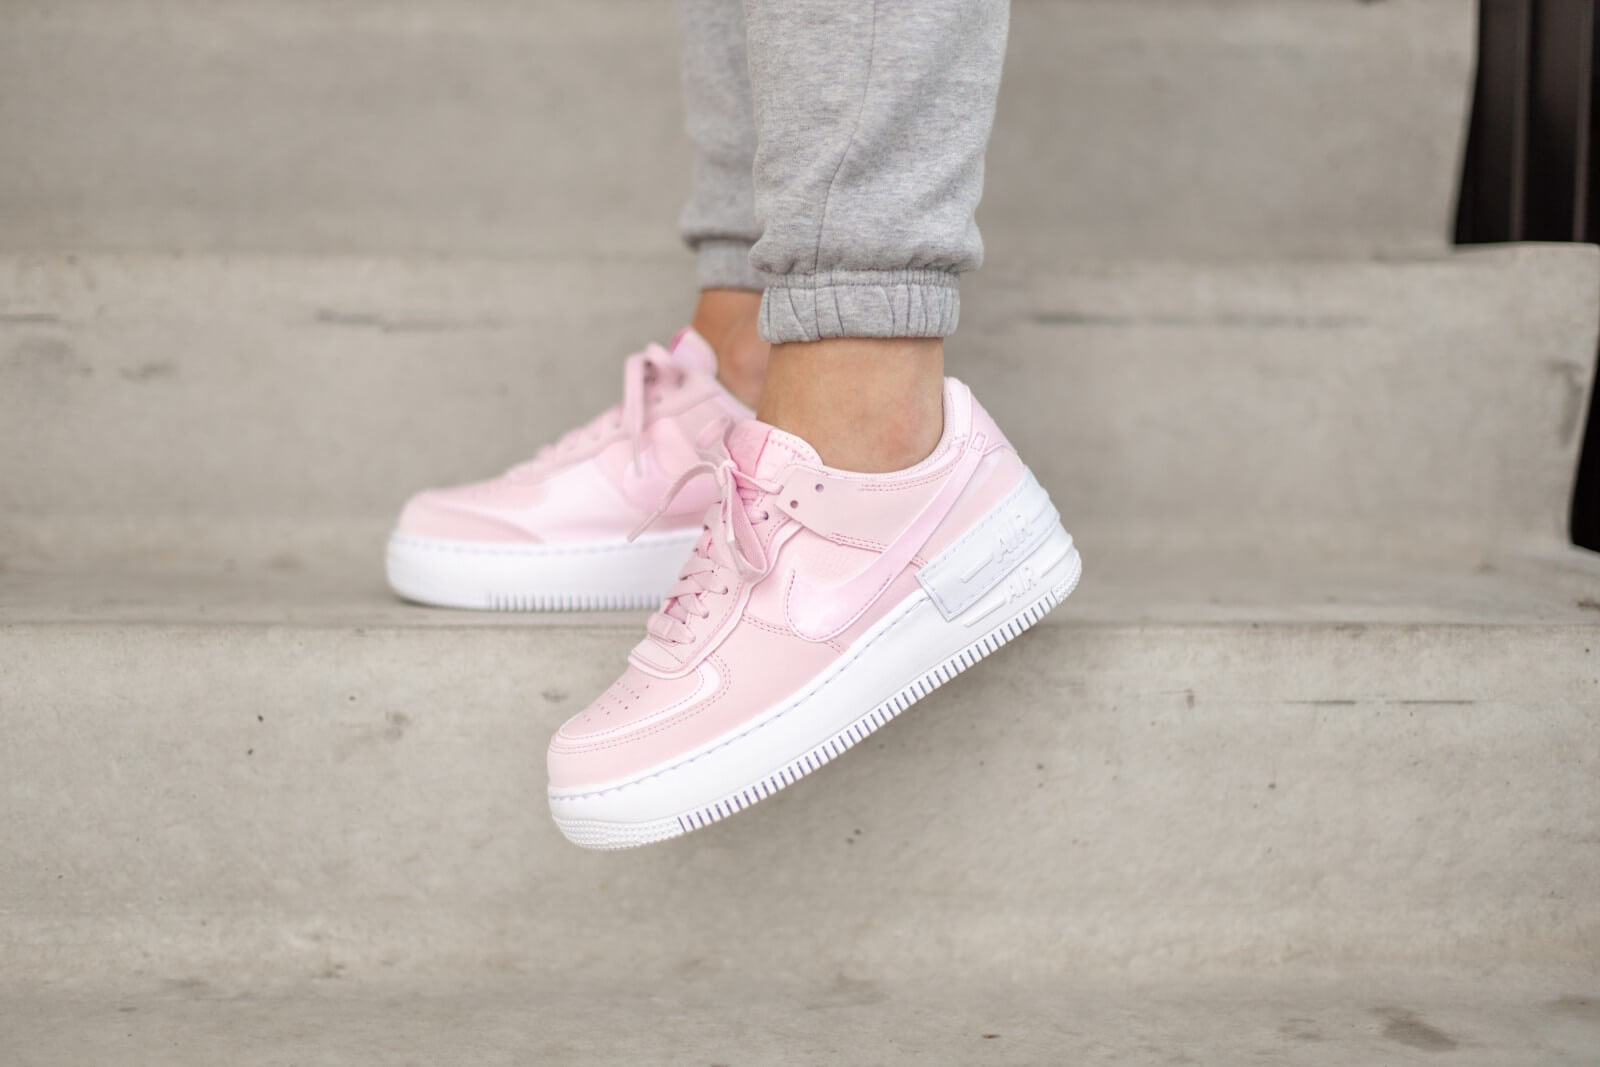 Nike Women S Air Force 1 Shadow Pink Foam White Cv3020 600